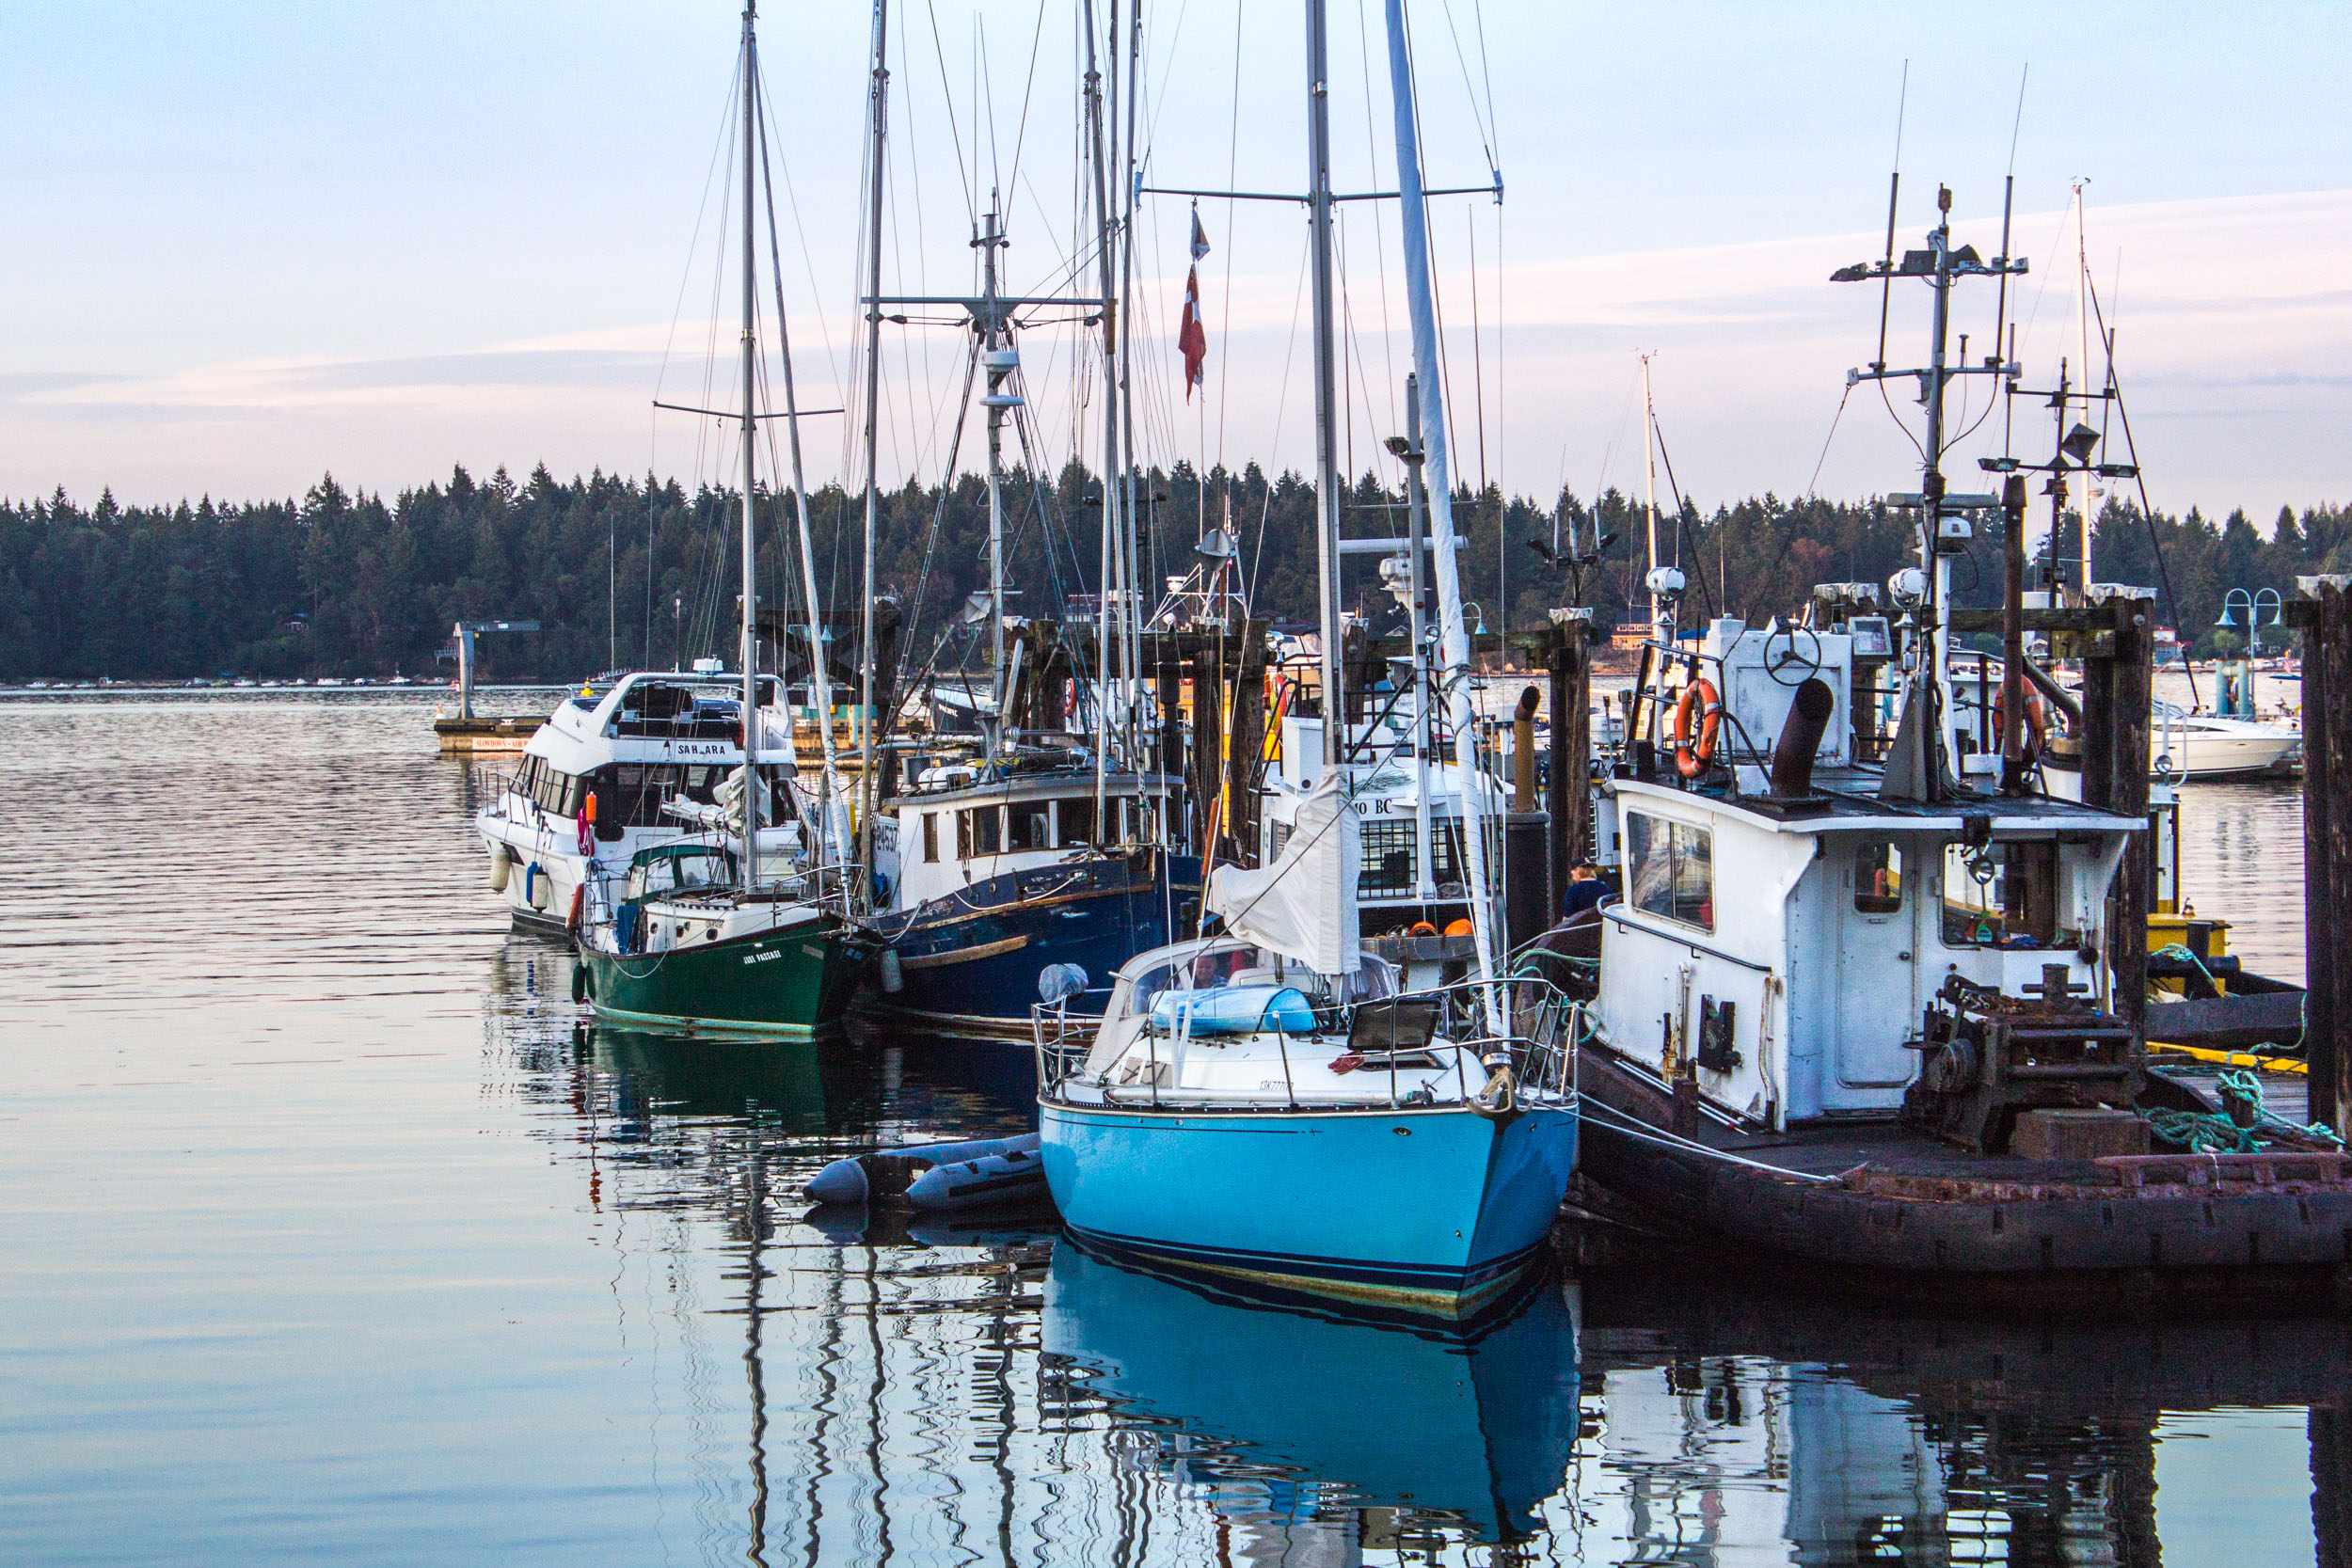 Boats in the Nanaimo Waterfront Harbour     Copyright © Afro Boy Productions. All rights reserved.